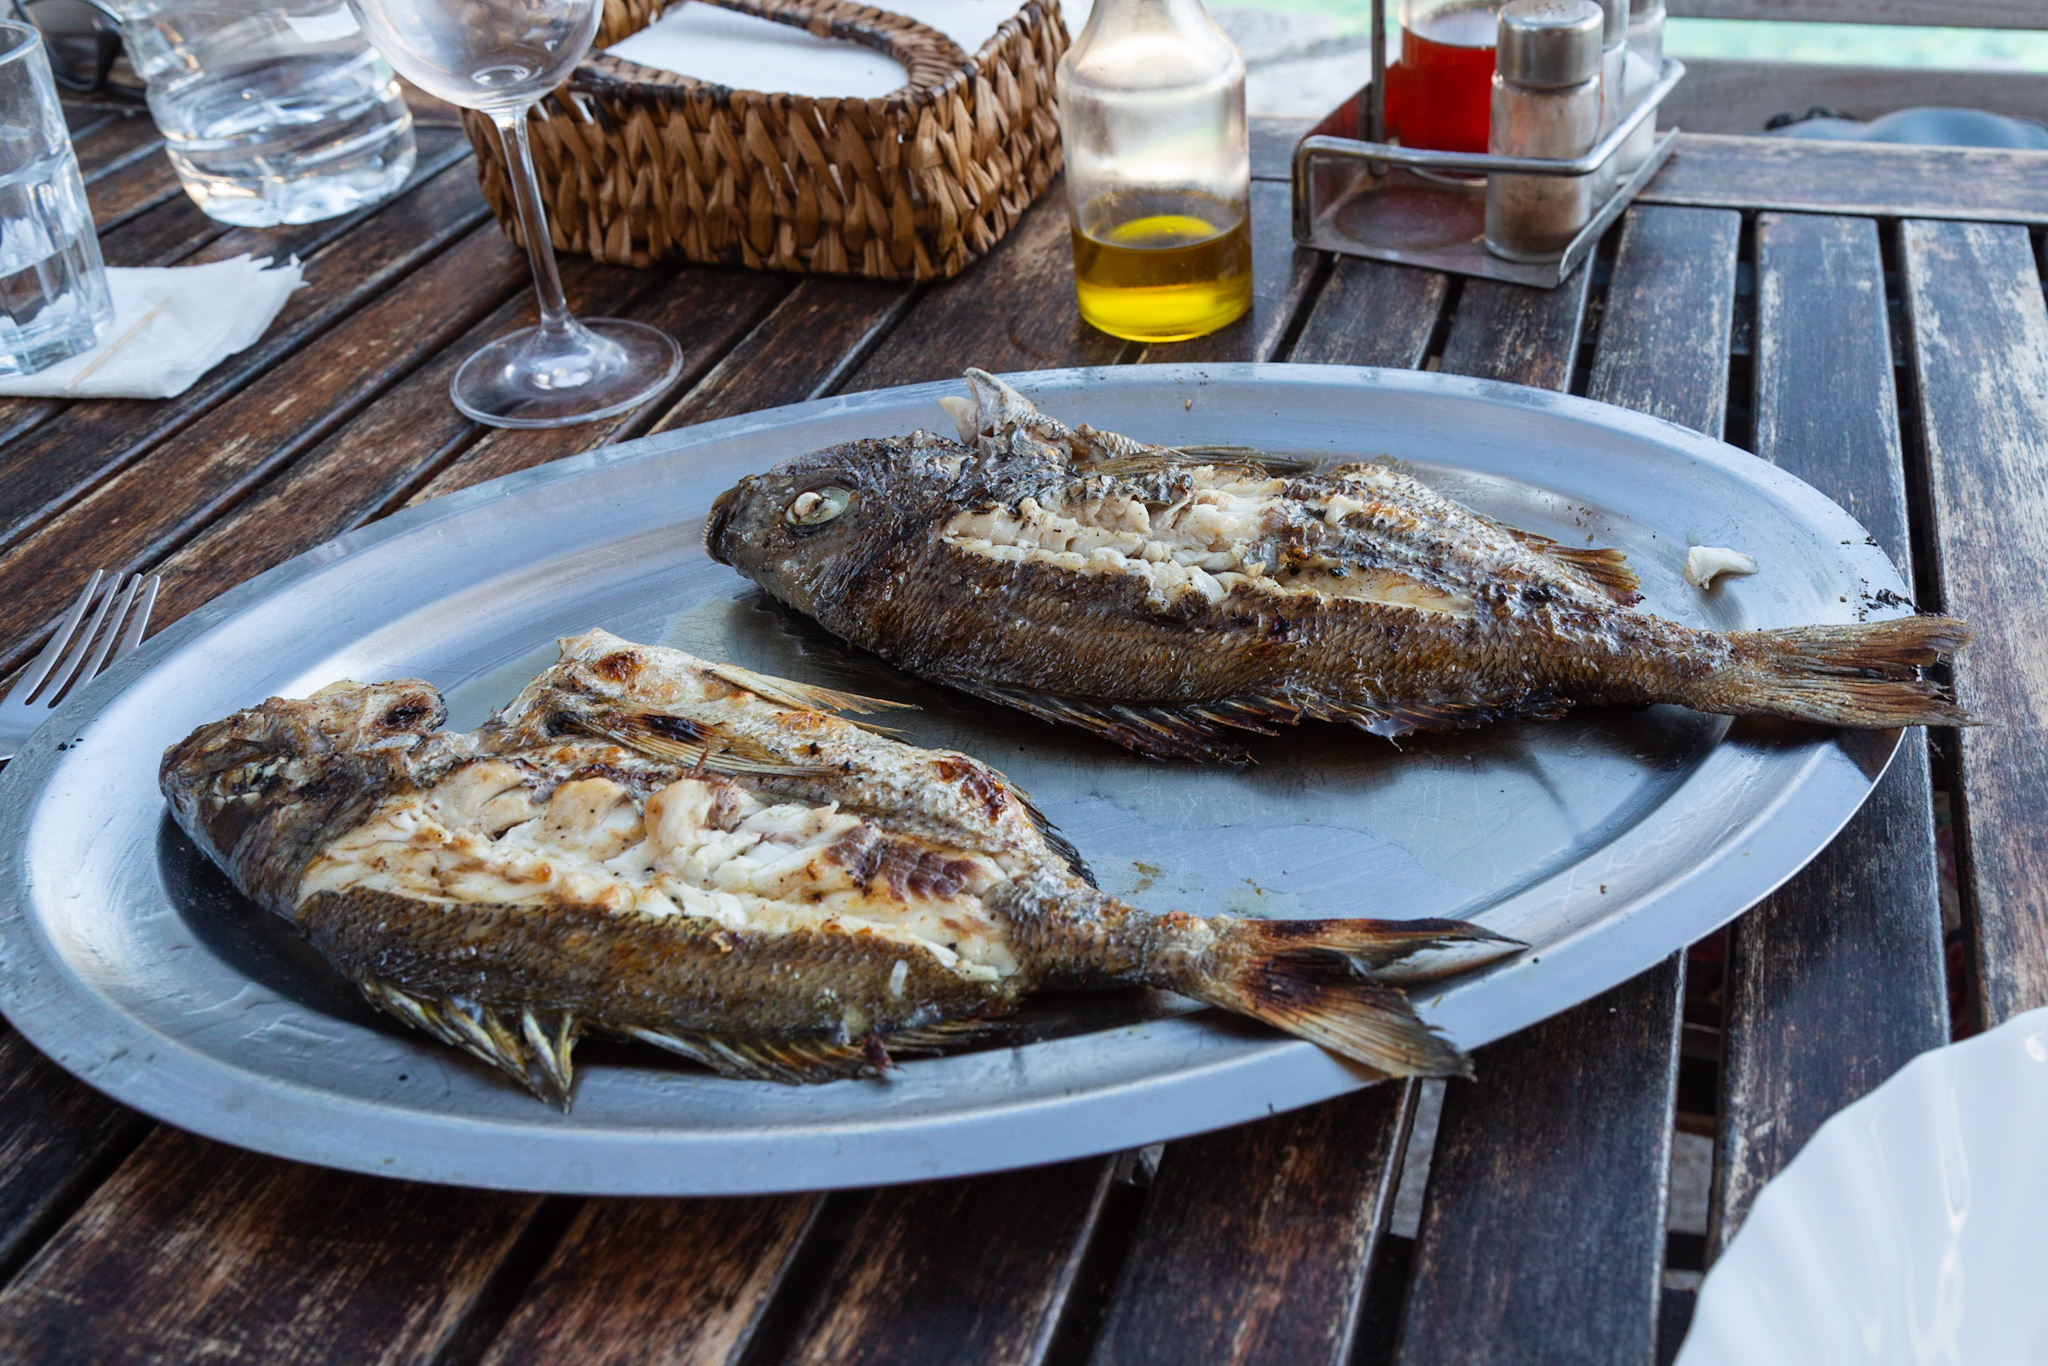 Grilled fish at Konoba Senko